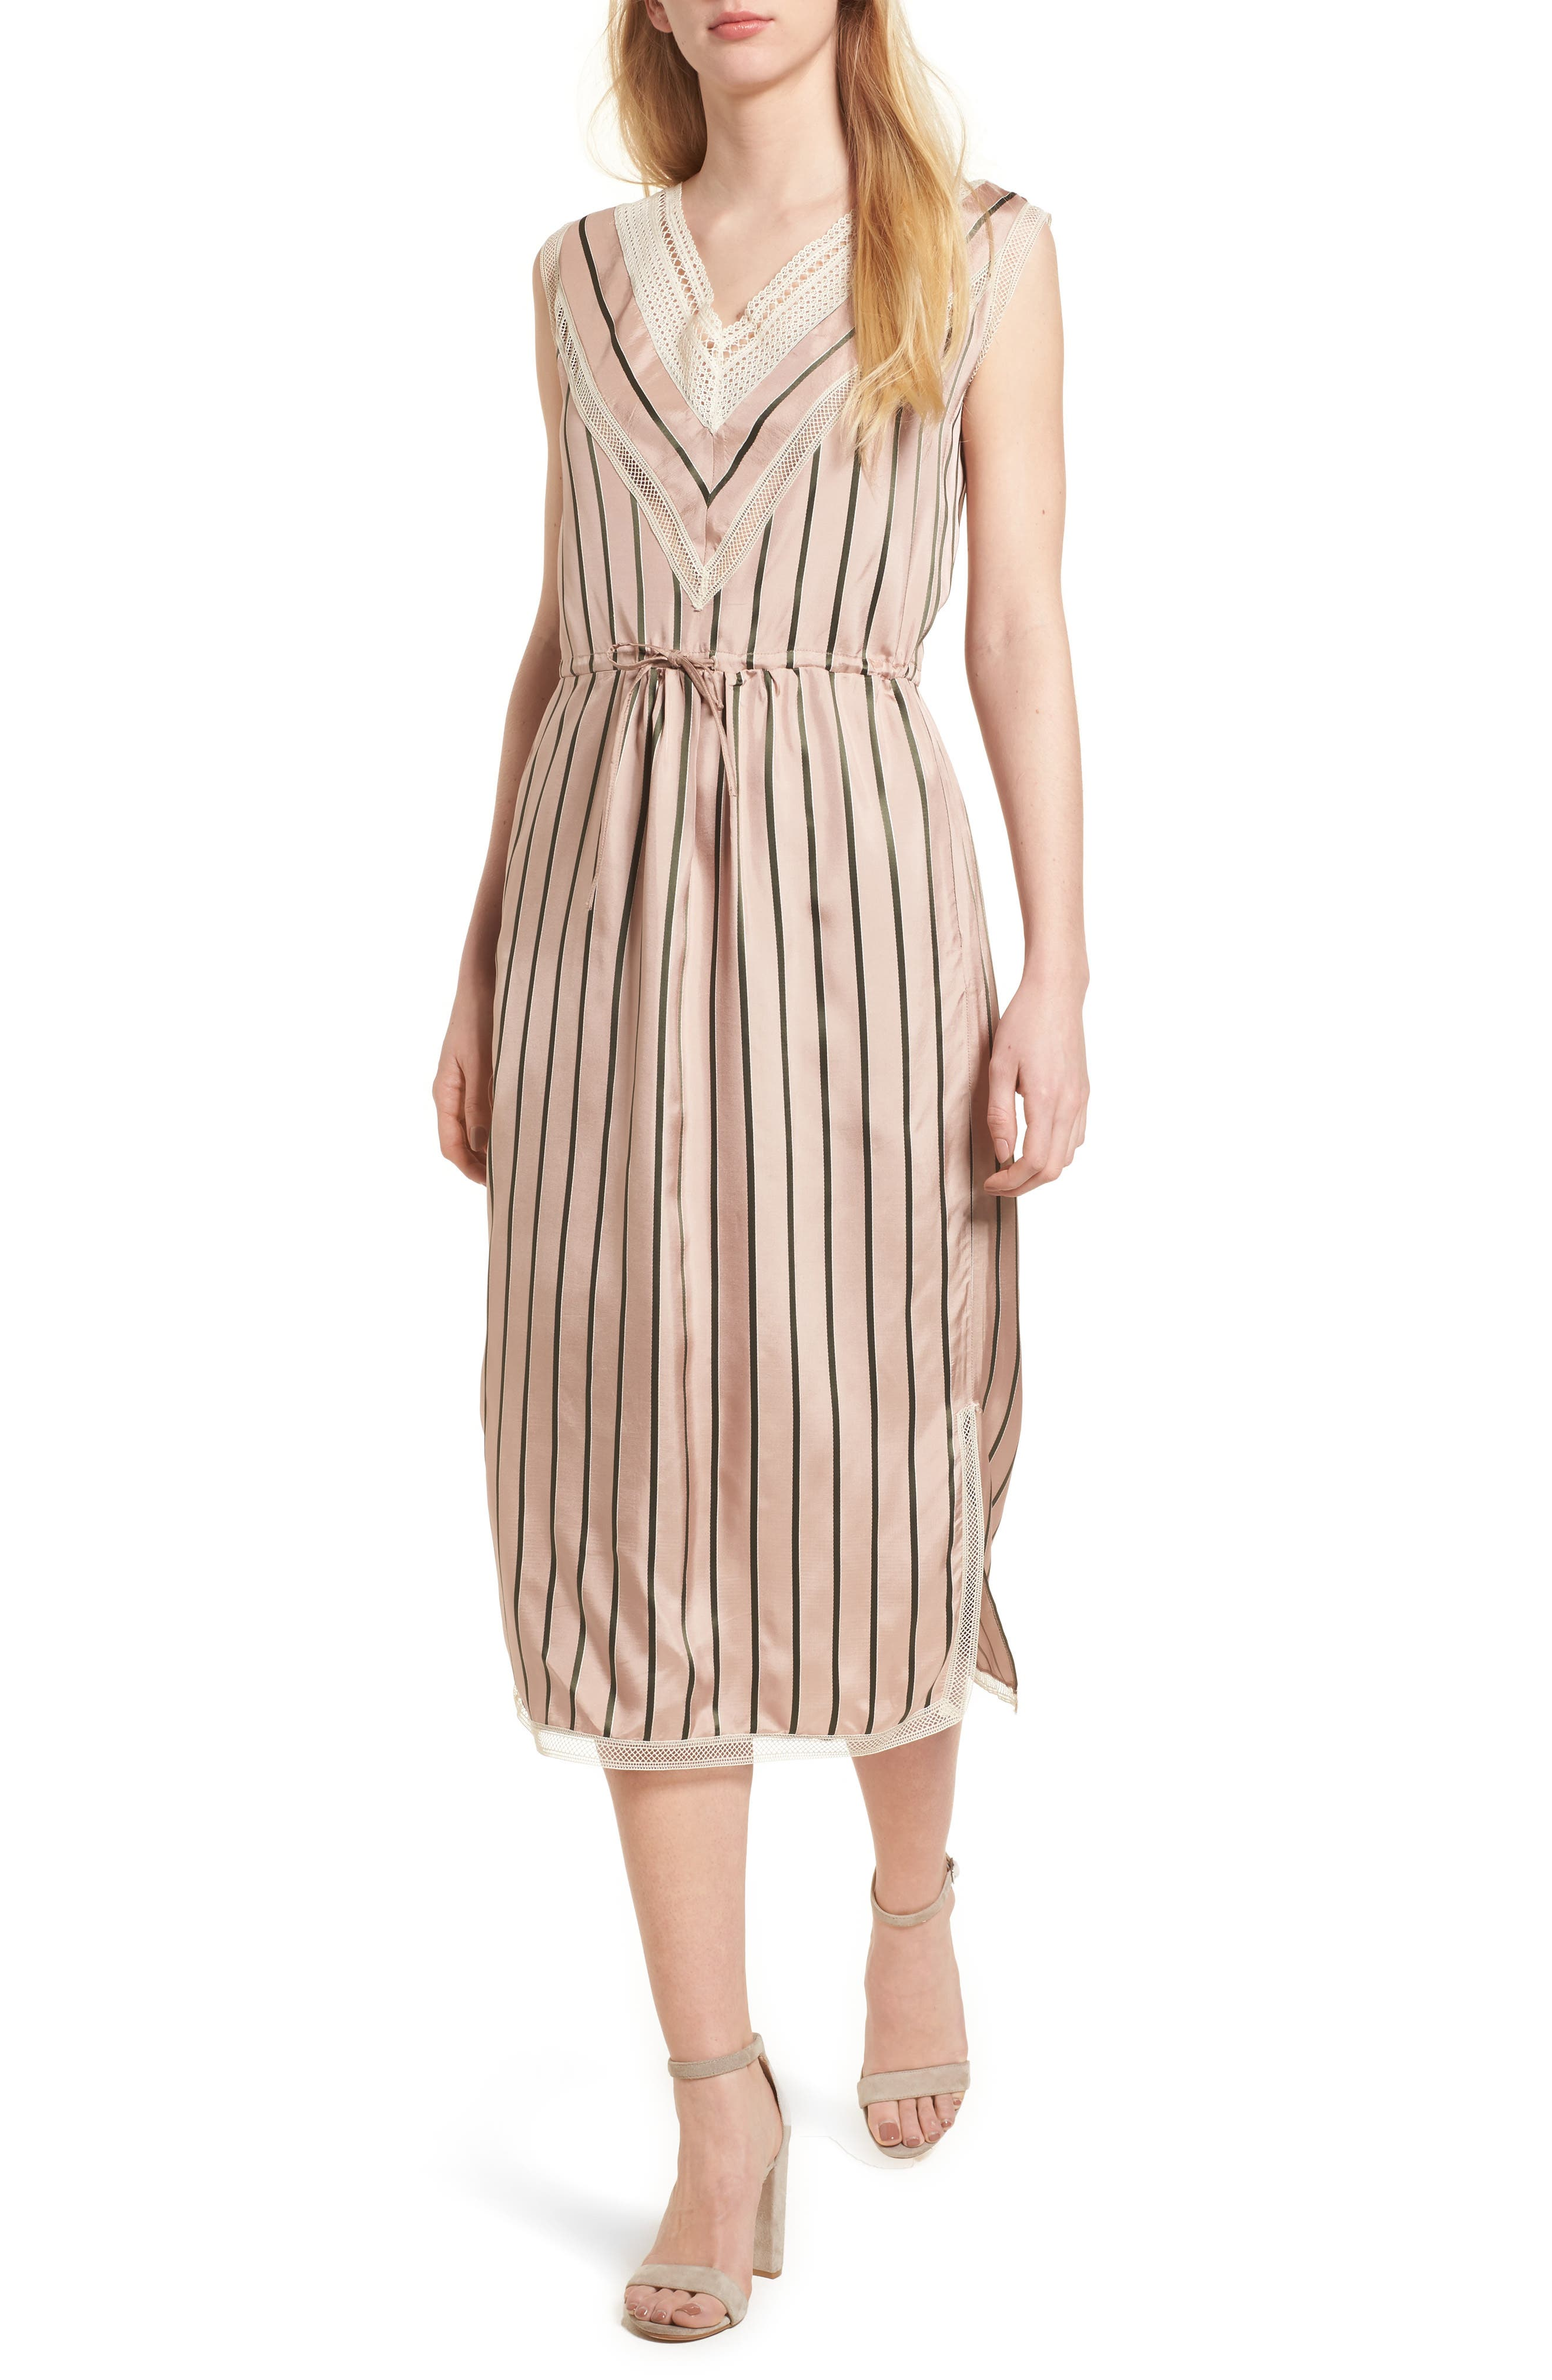 Cosway Dress,                         Main,                         color, Salmon